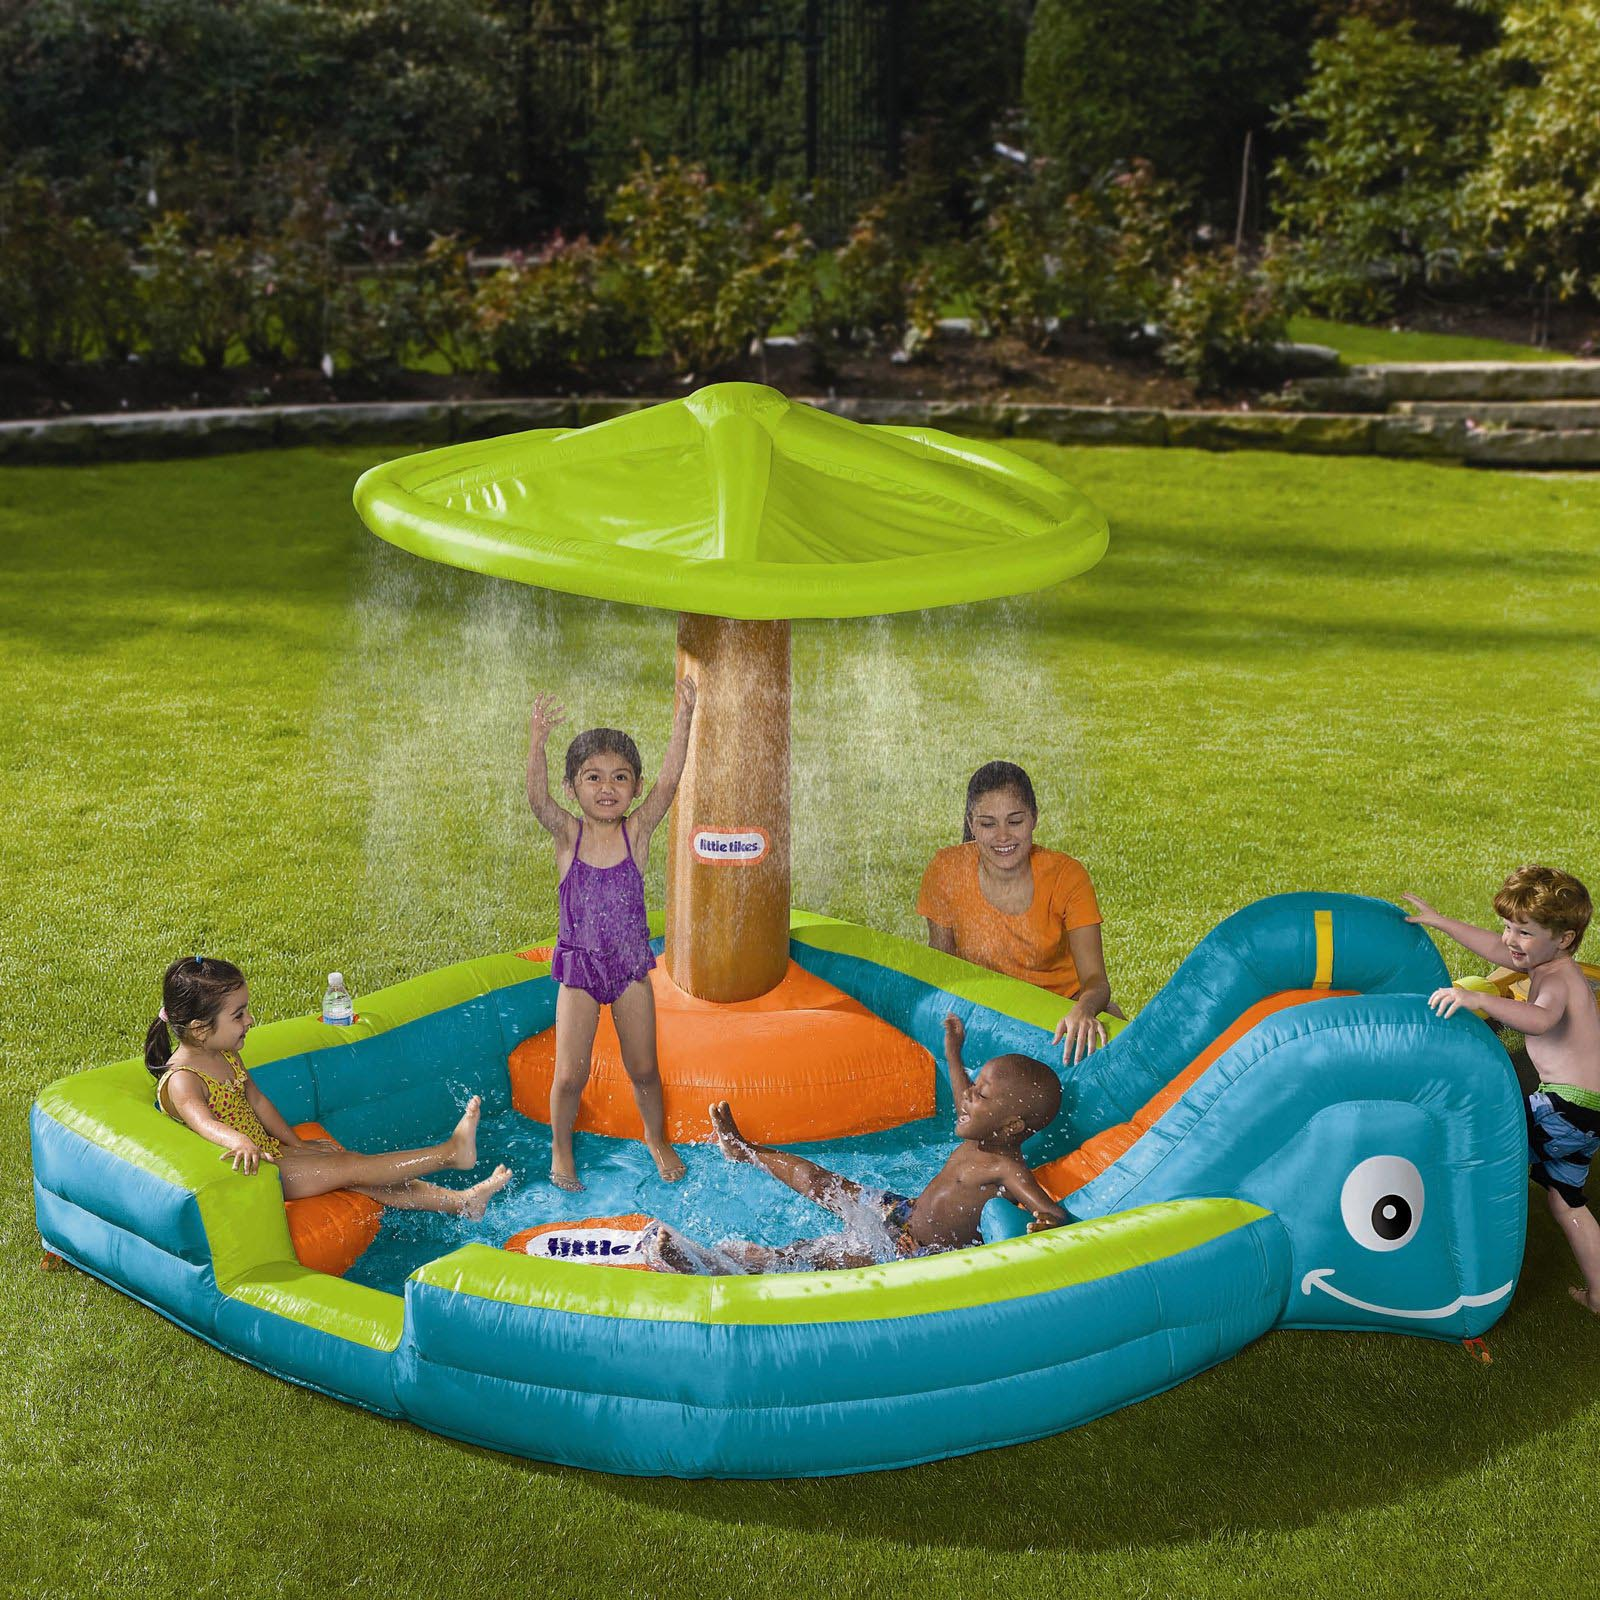 Cheap portable swimming pools backyard design ideas for Kids swimming pool